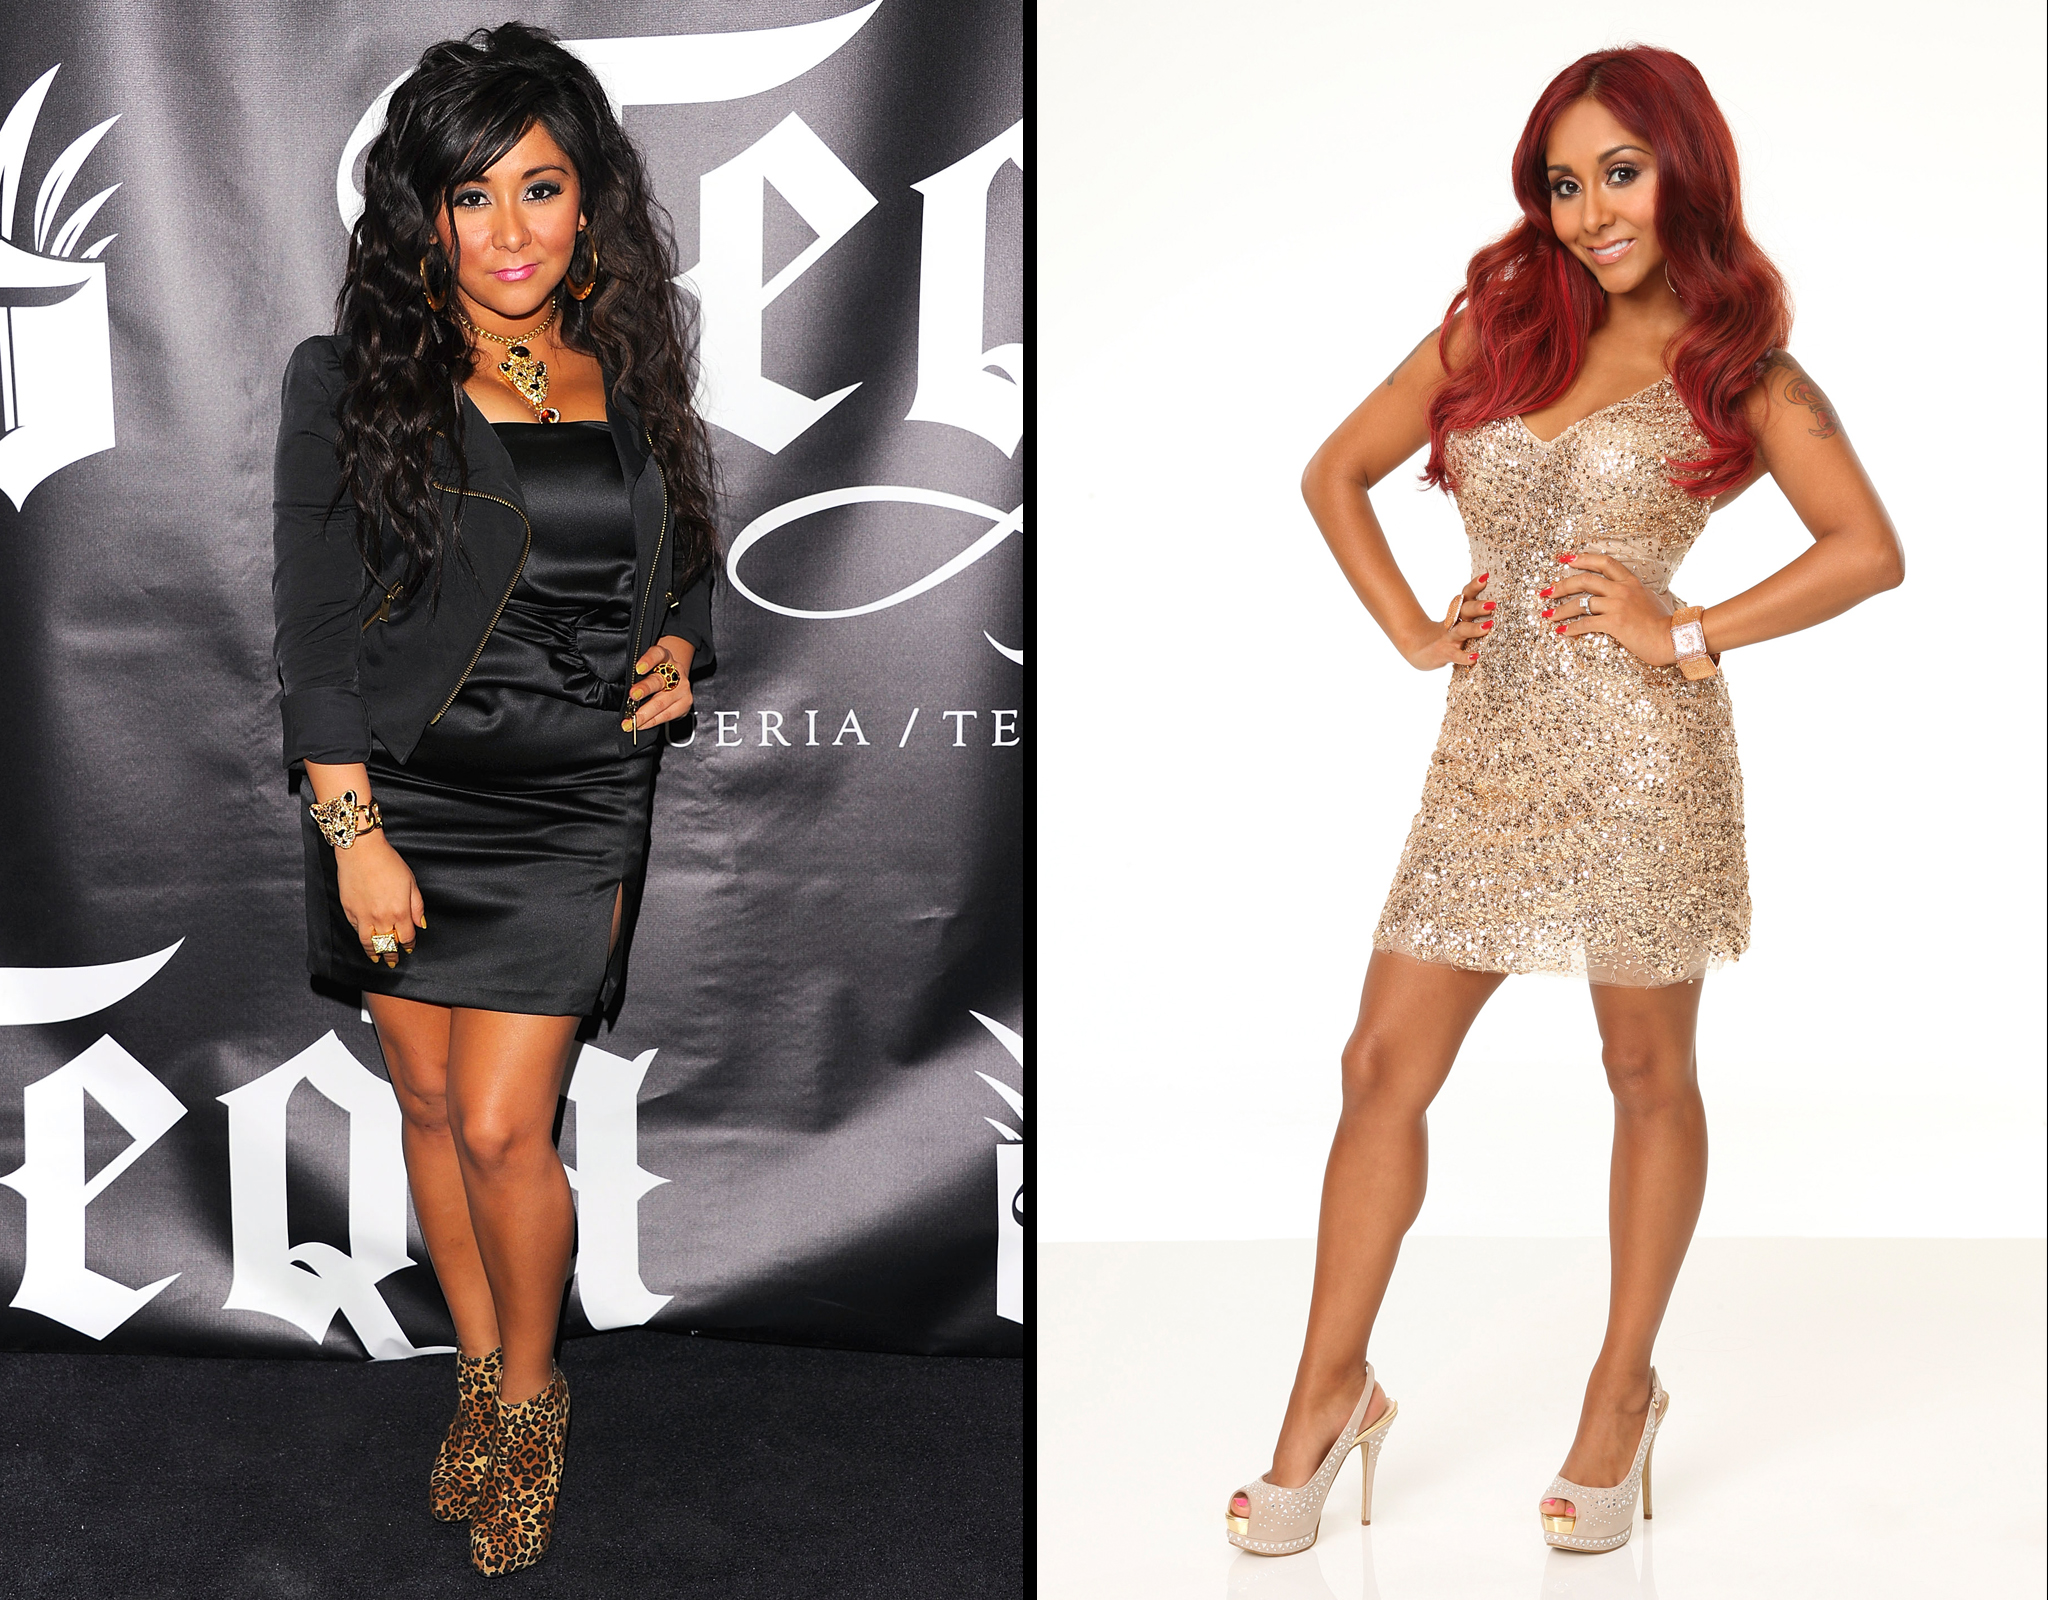 Snooki in February 2011/Snooki in September 2013 (WireImage/Getty Images)